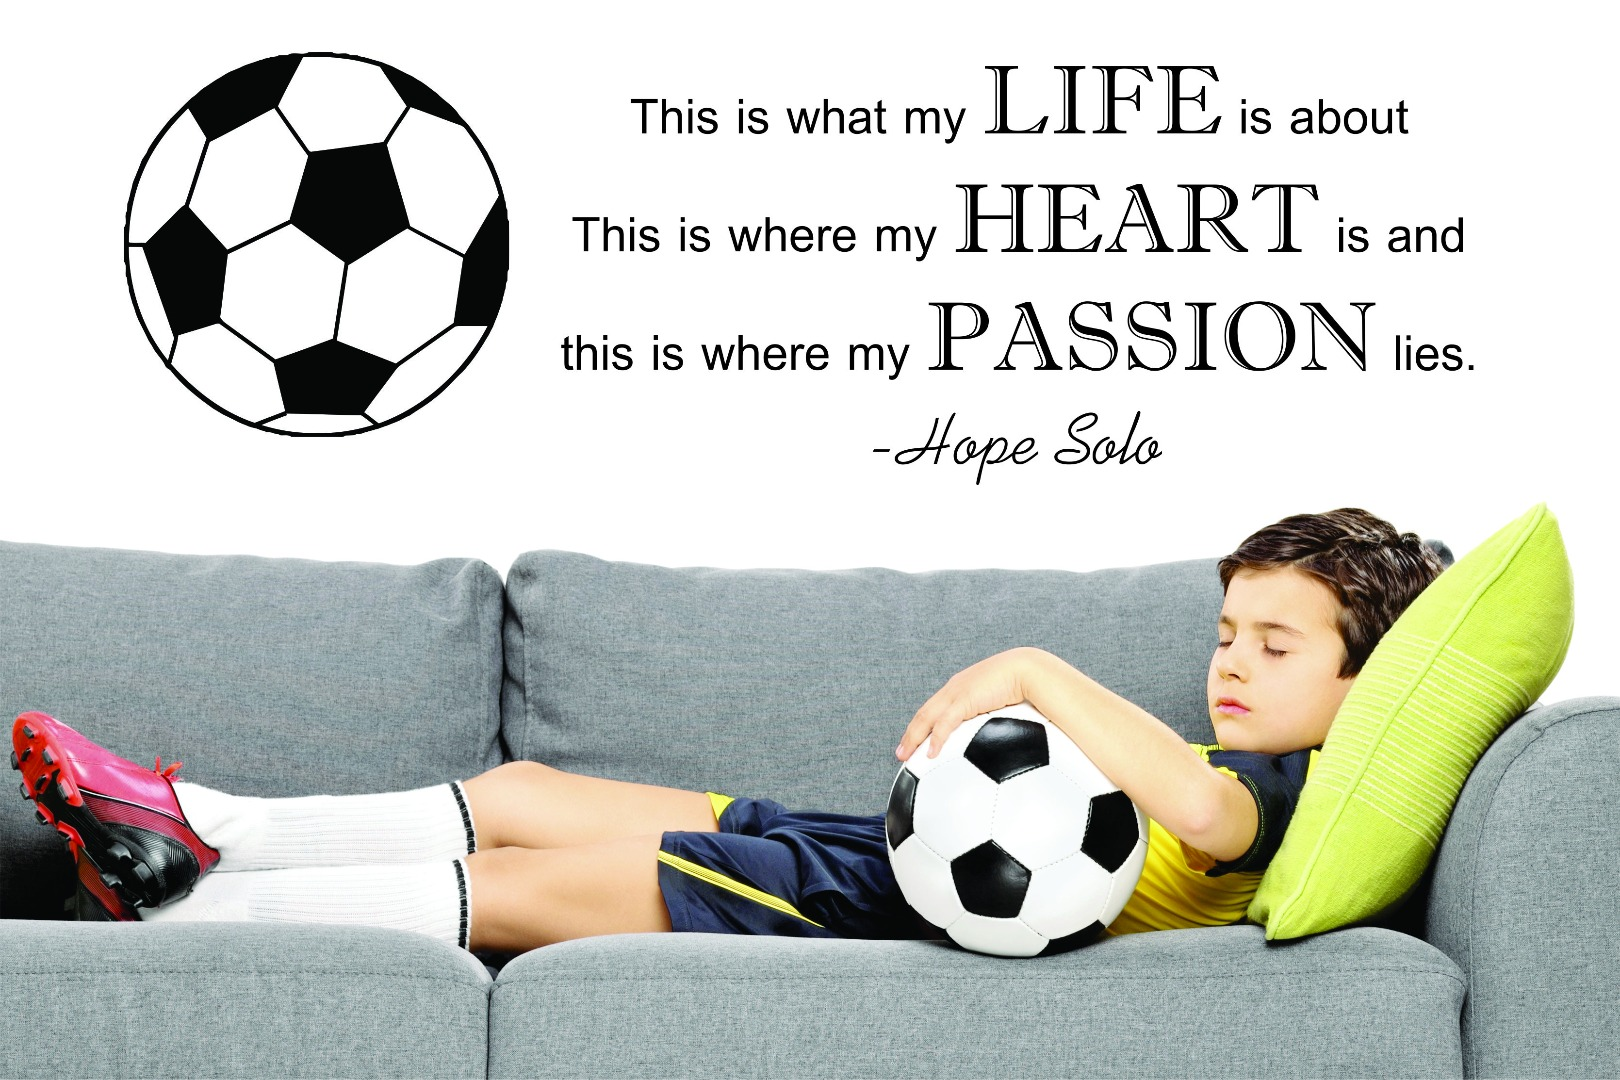 Custom Wall Decal : This Is What My Life Is About. This Is Where My Heart Is Hope Solo Soccer Quote... by Design With Vinyl